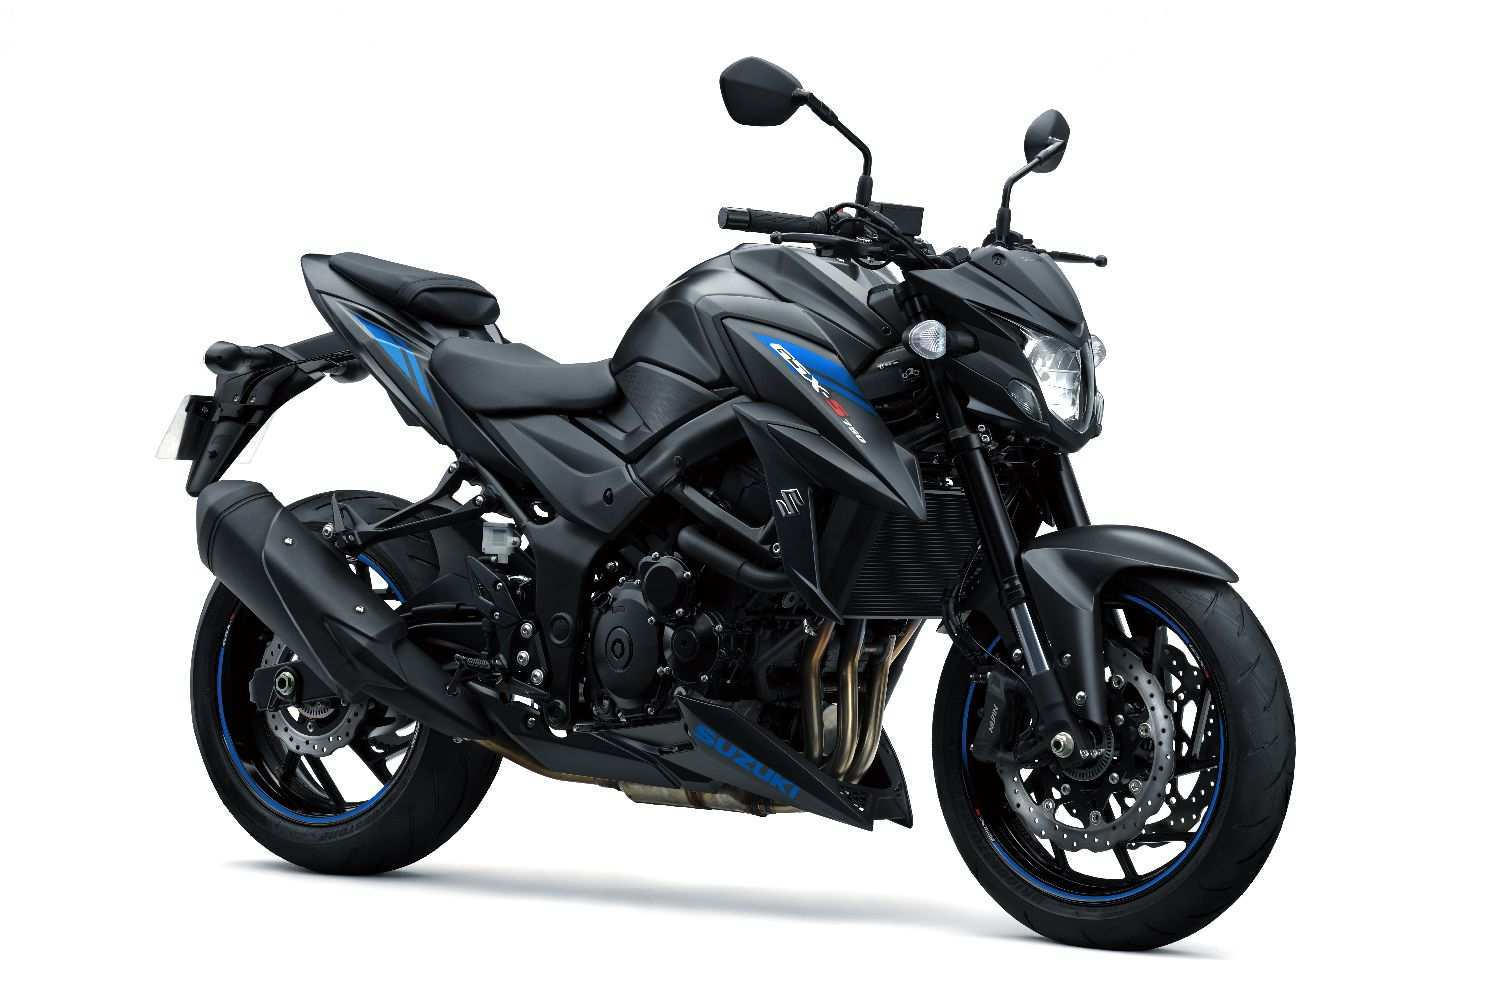 89 All New Suzuki Neuheiten 2019 Price And Release Date